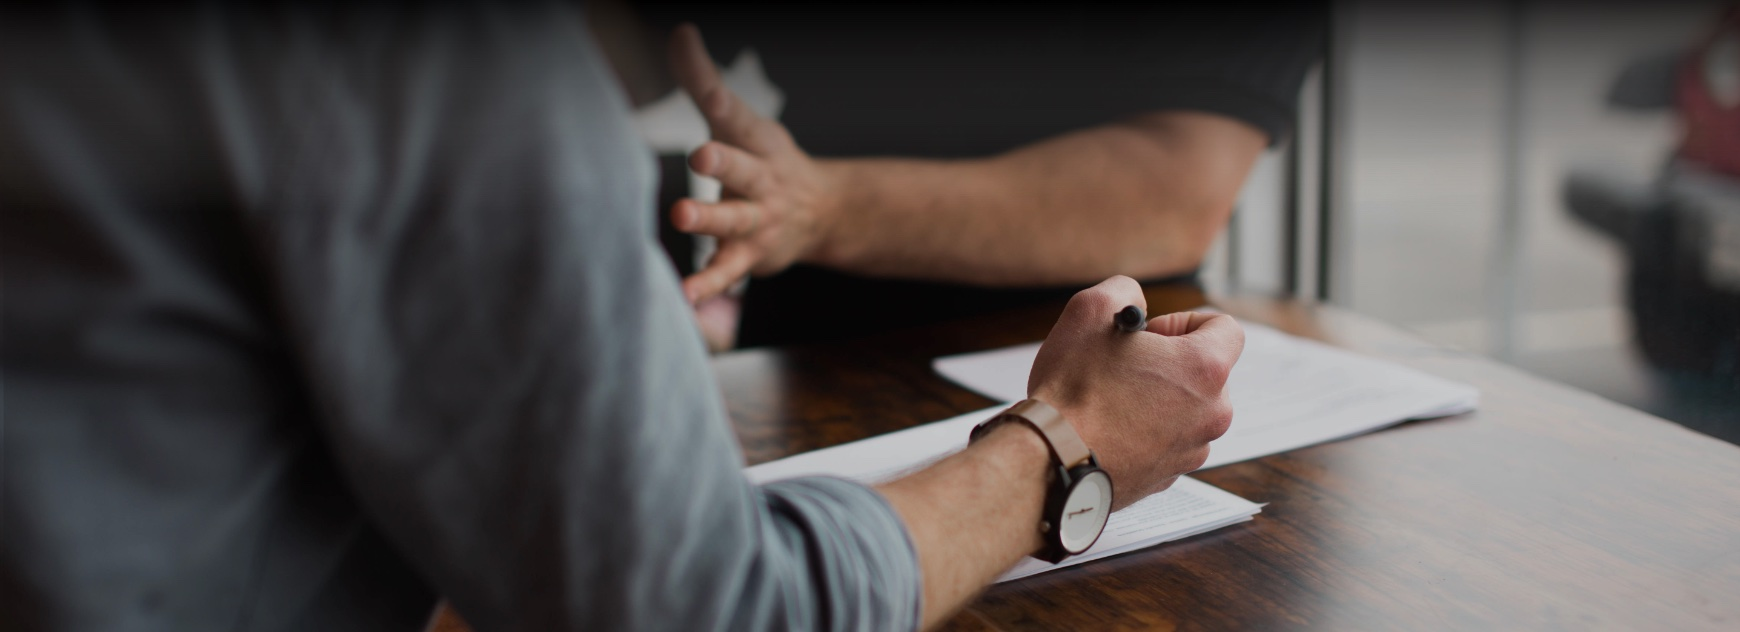 man writing on paper while discussing with colleague